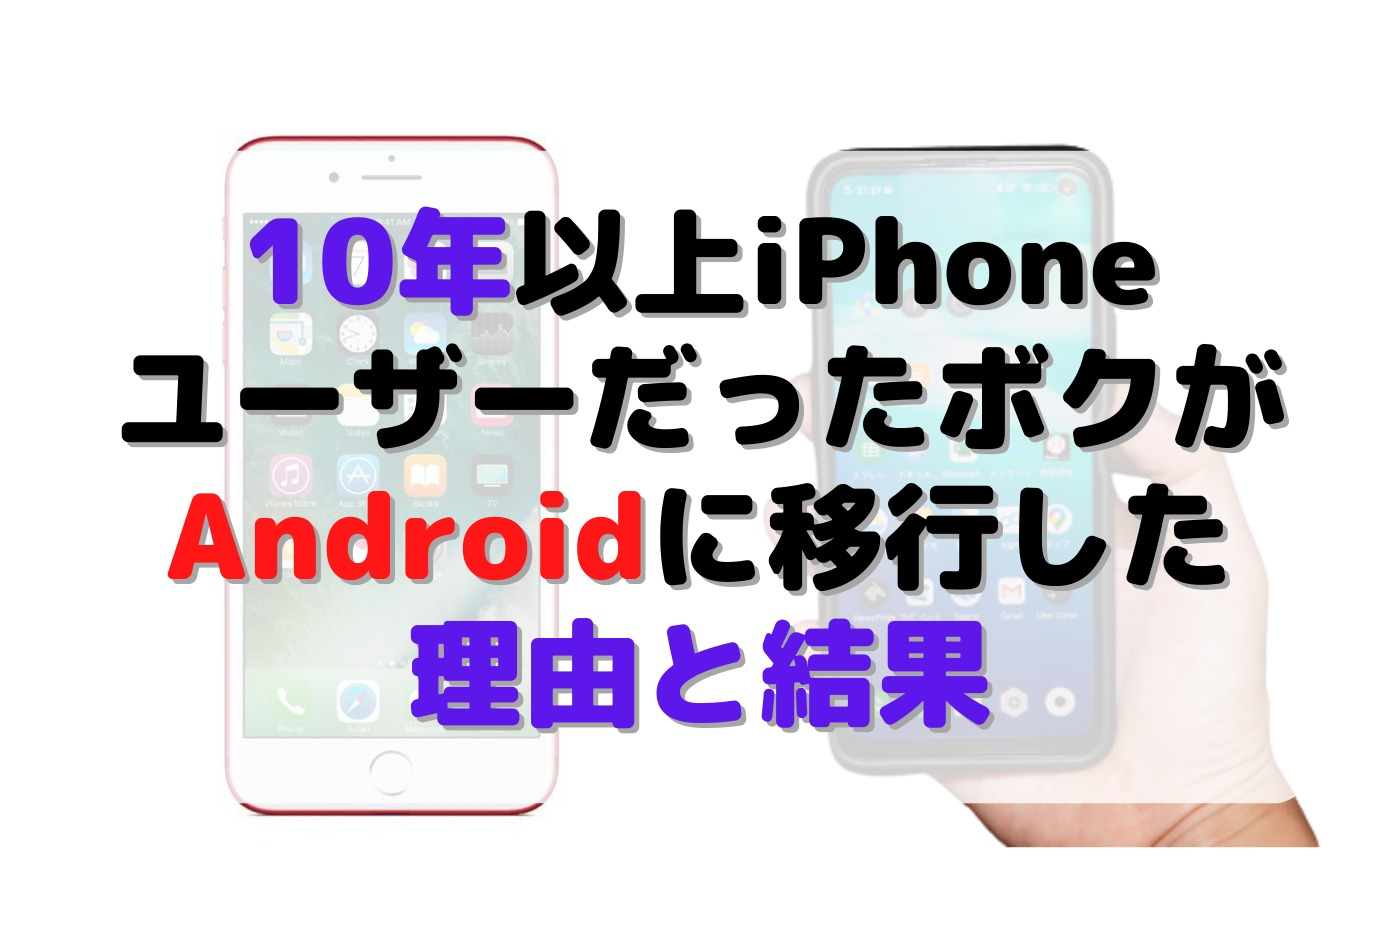 iPhone、Android